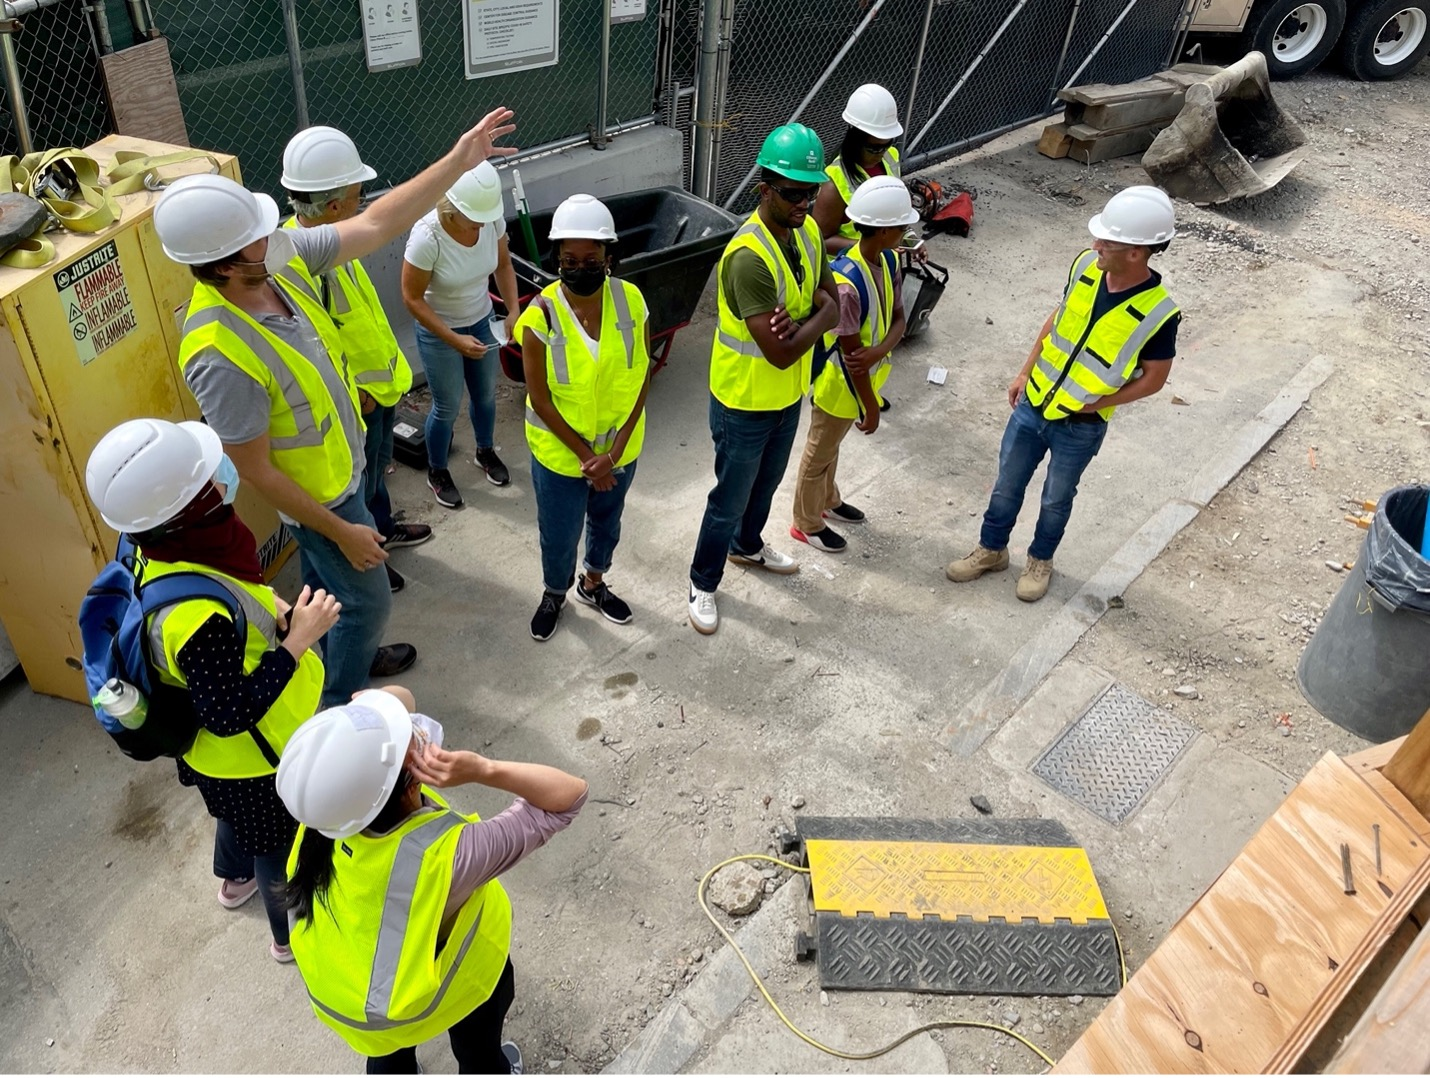 A group of construction educators on field trip.